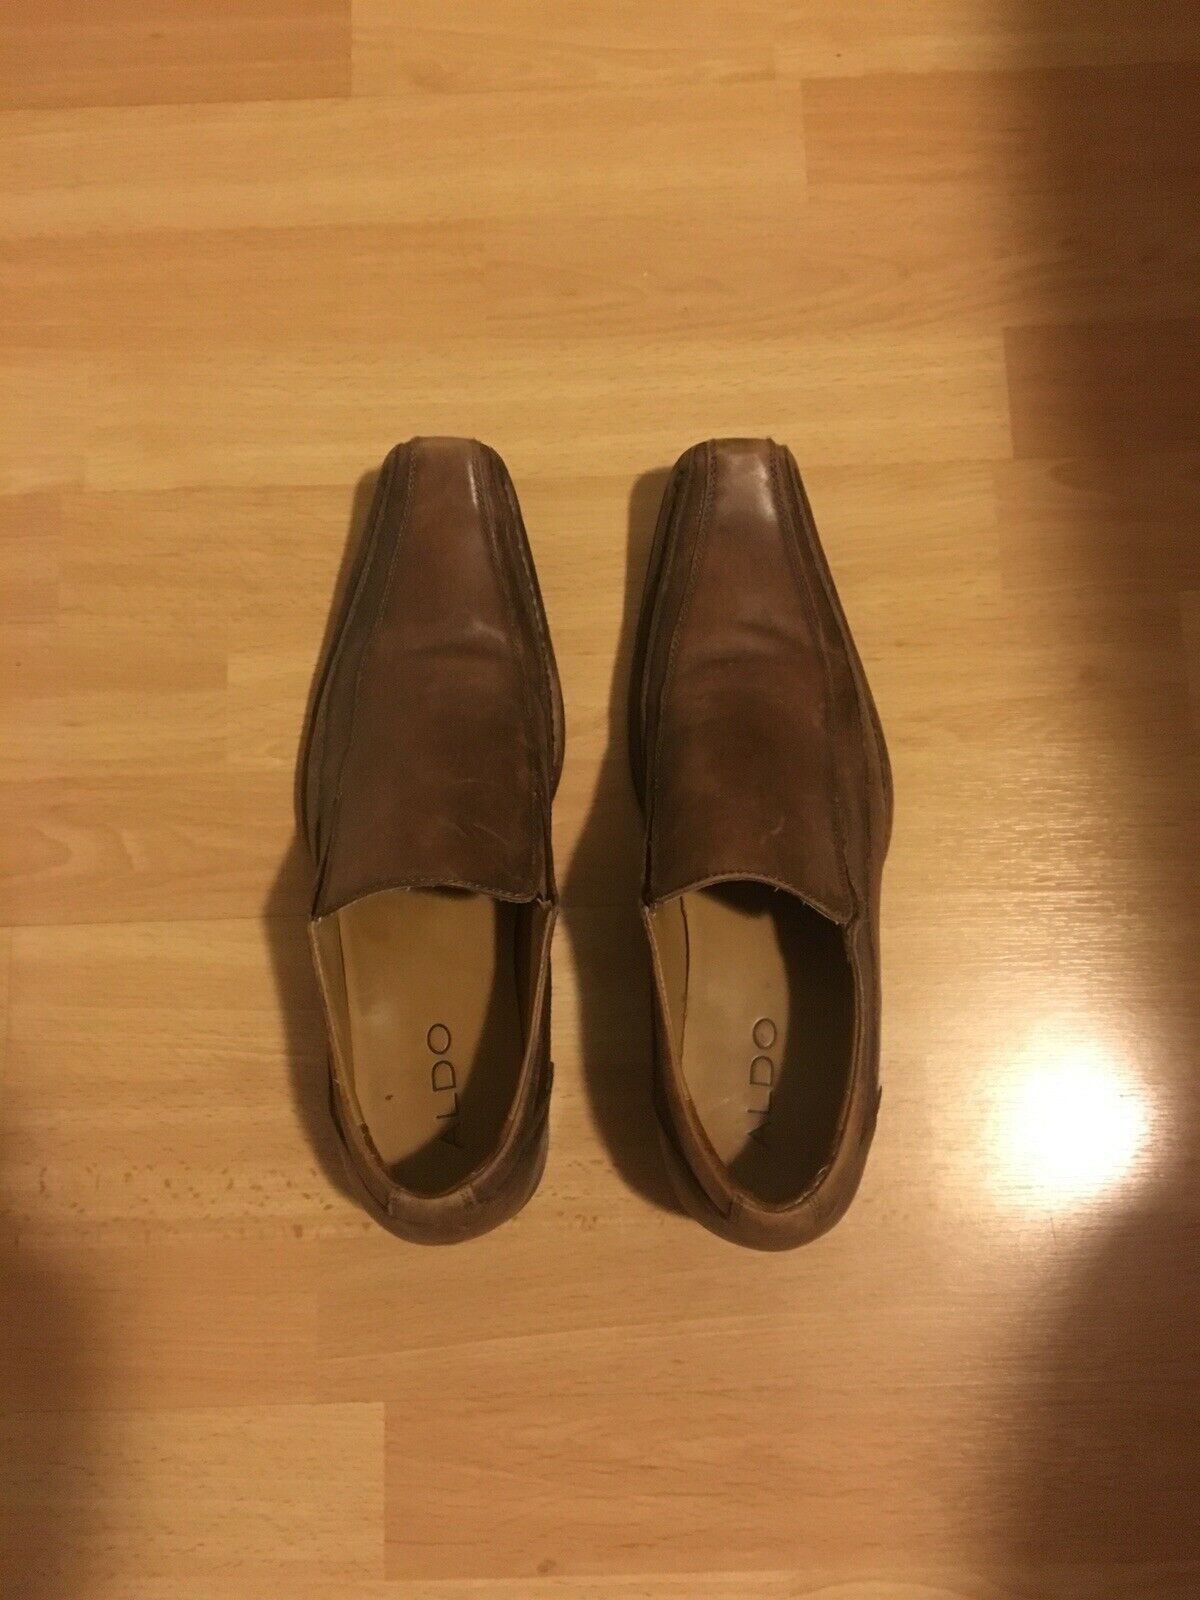 Aldo Mens Dress shoes Sz 10 Brand New Has Marks From Being Handled